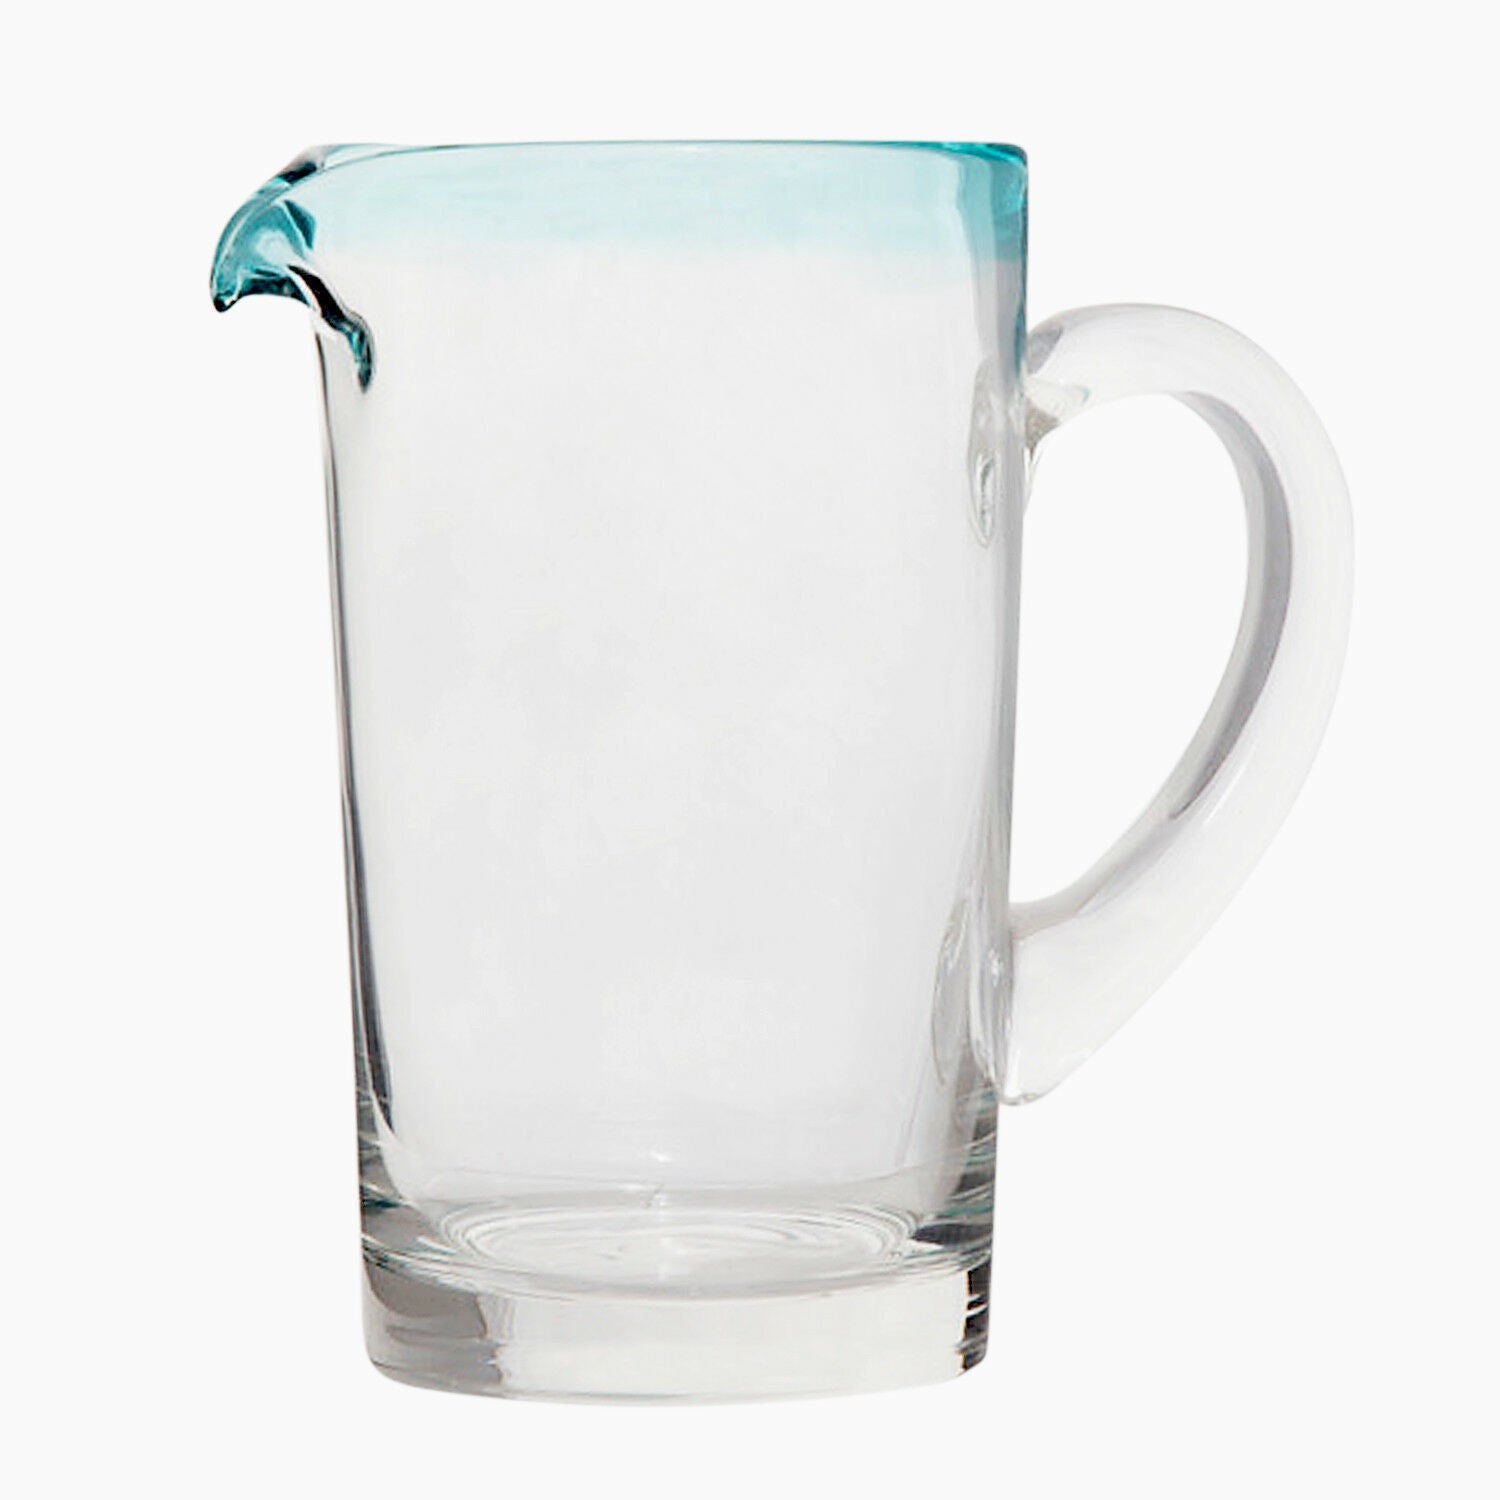 Mexican Glass 37 Oz. Pitcher - Margarita Pitcher Blue Rim Water Lemonade Pitcher